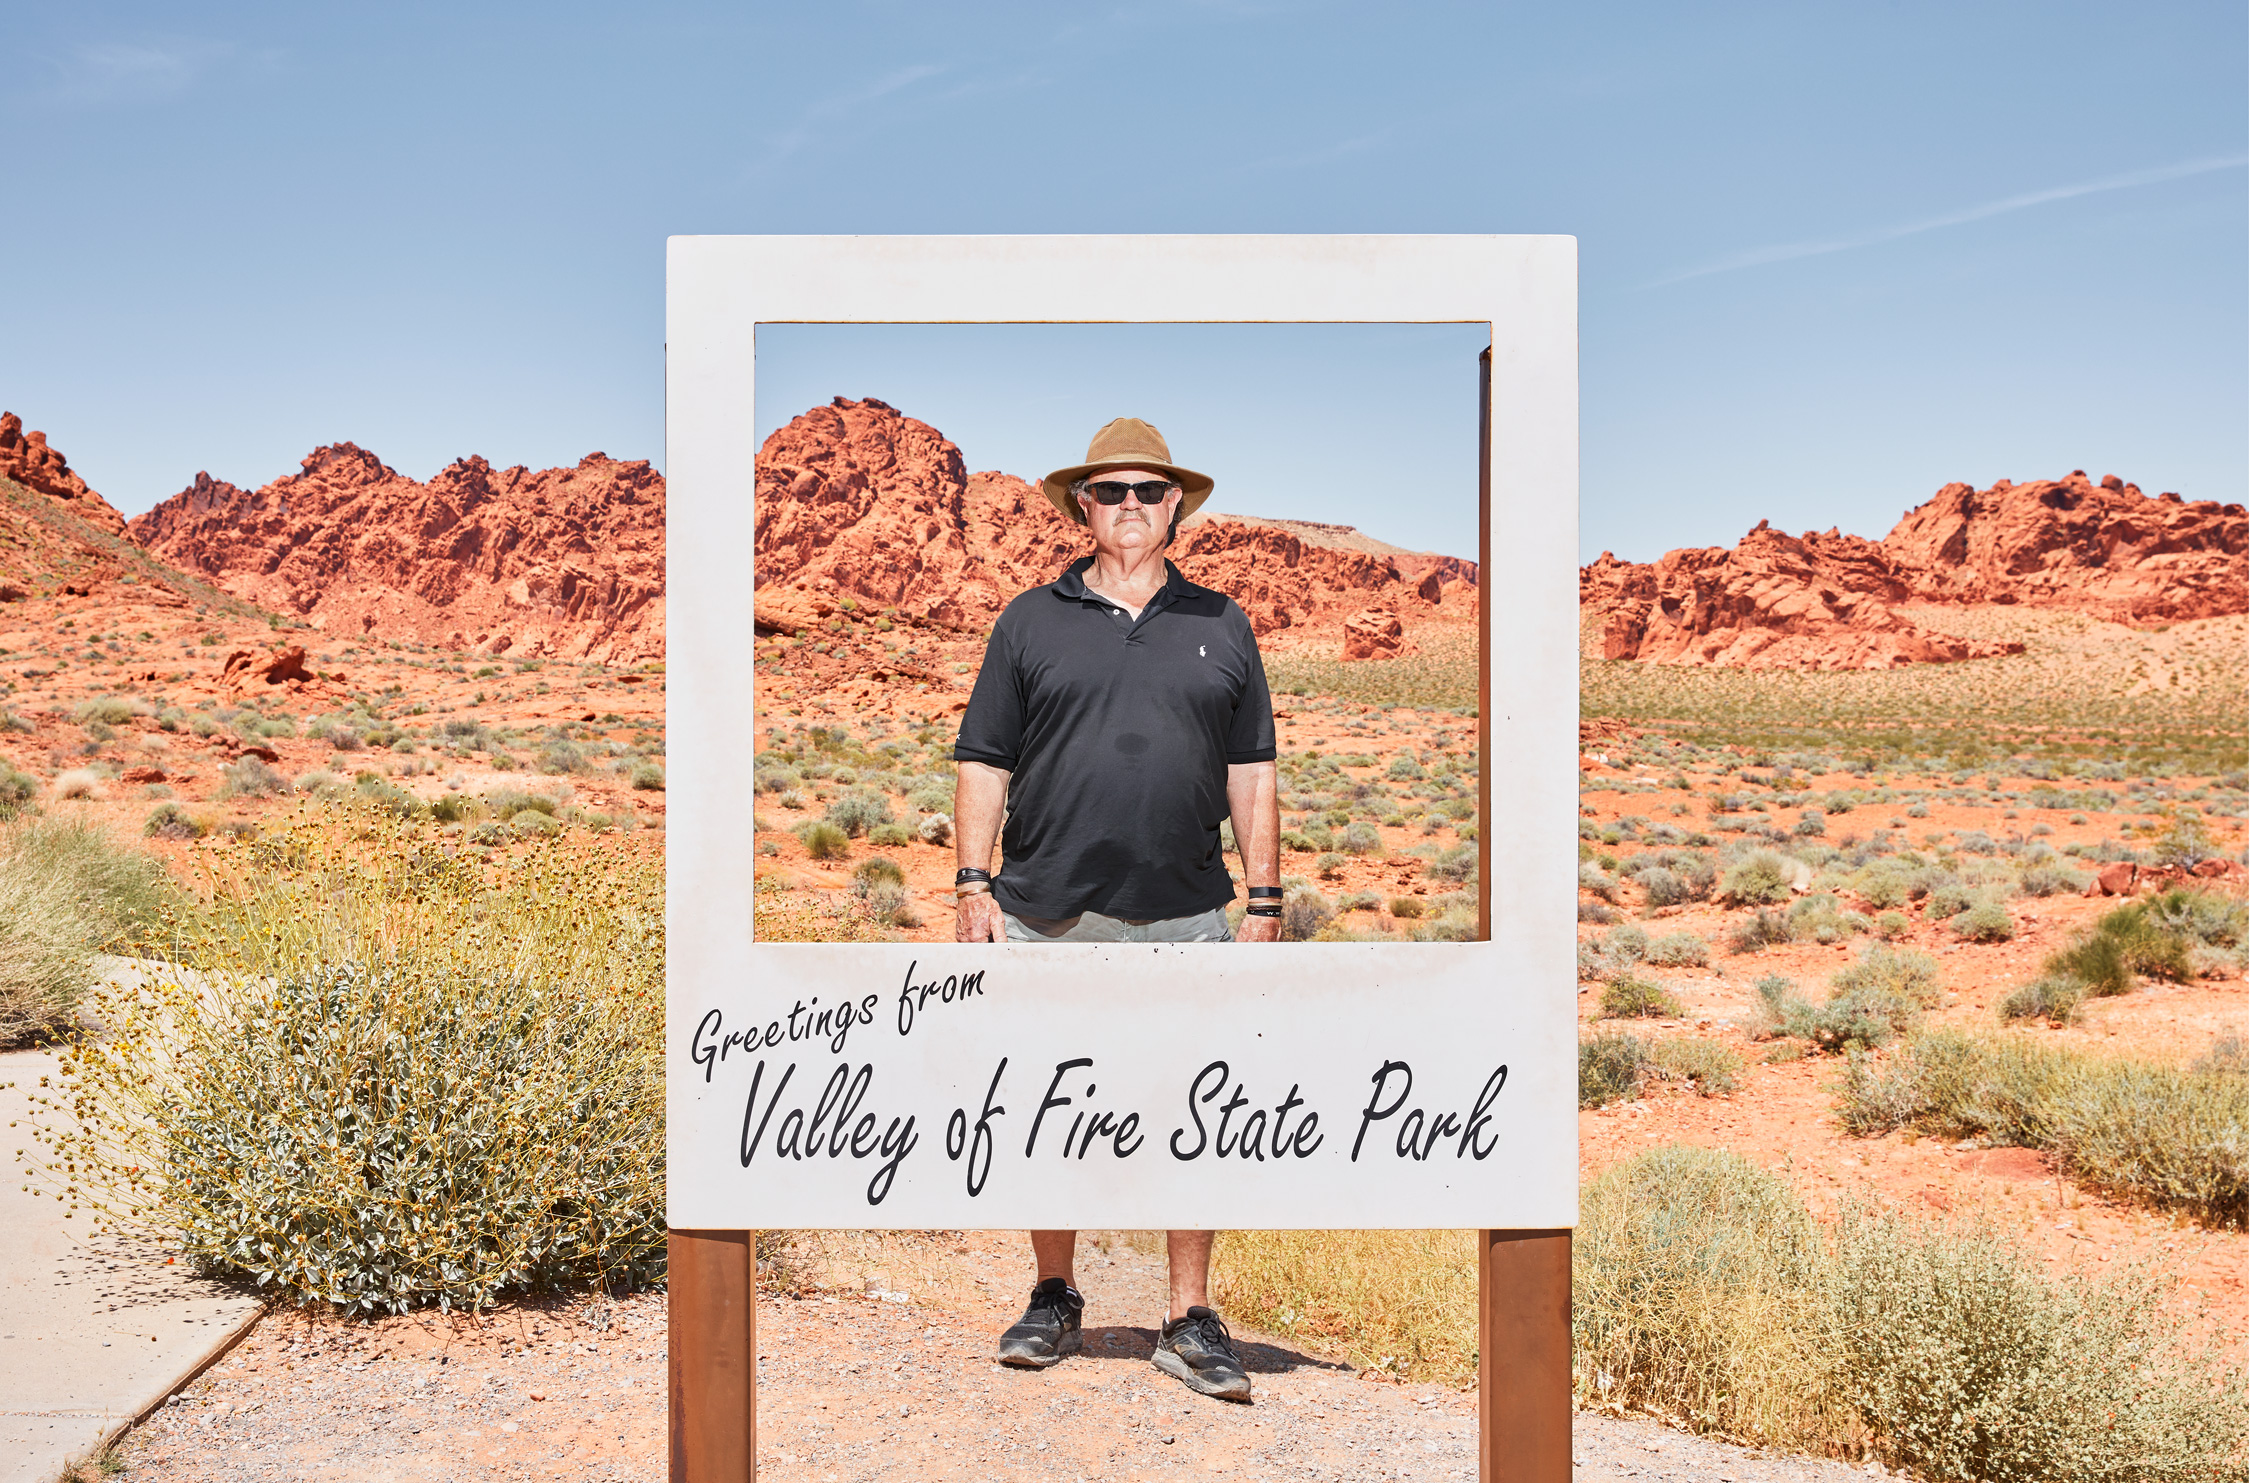 Dad Hits The Road - Valley of Fire State Park, NV - Stephen Denton Photography -  Los Angeles, California based  Commercial Photographer